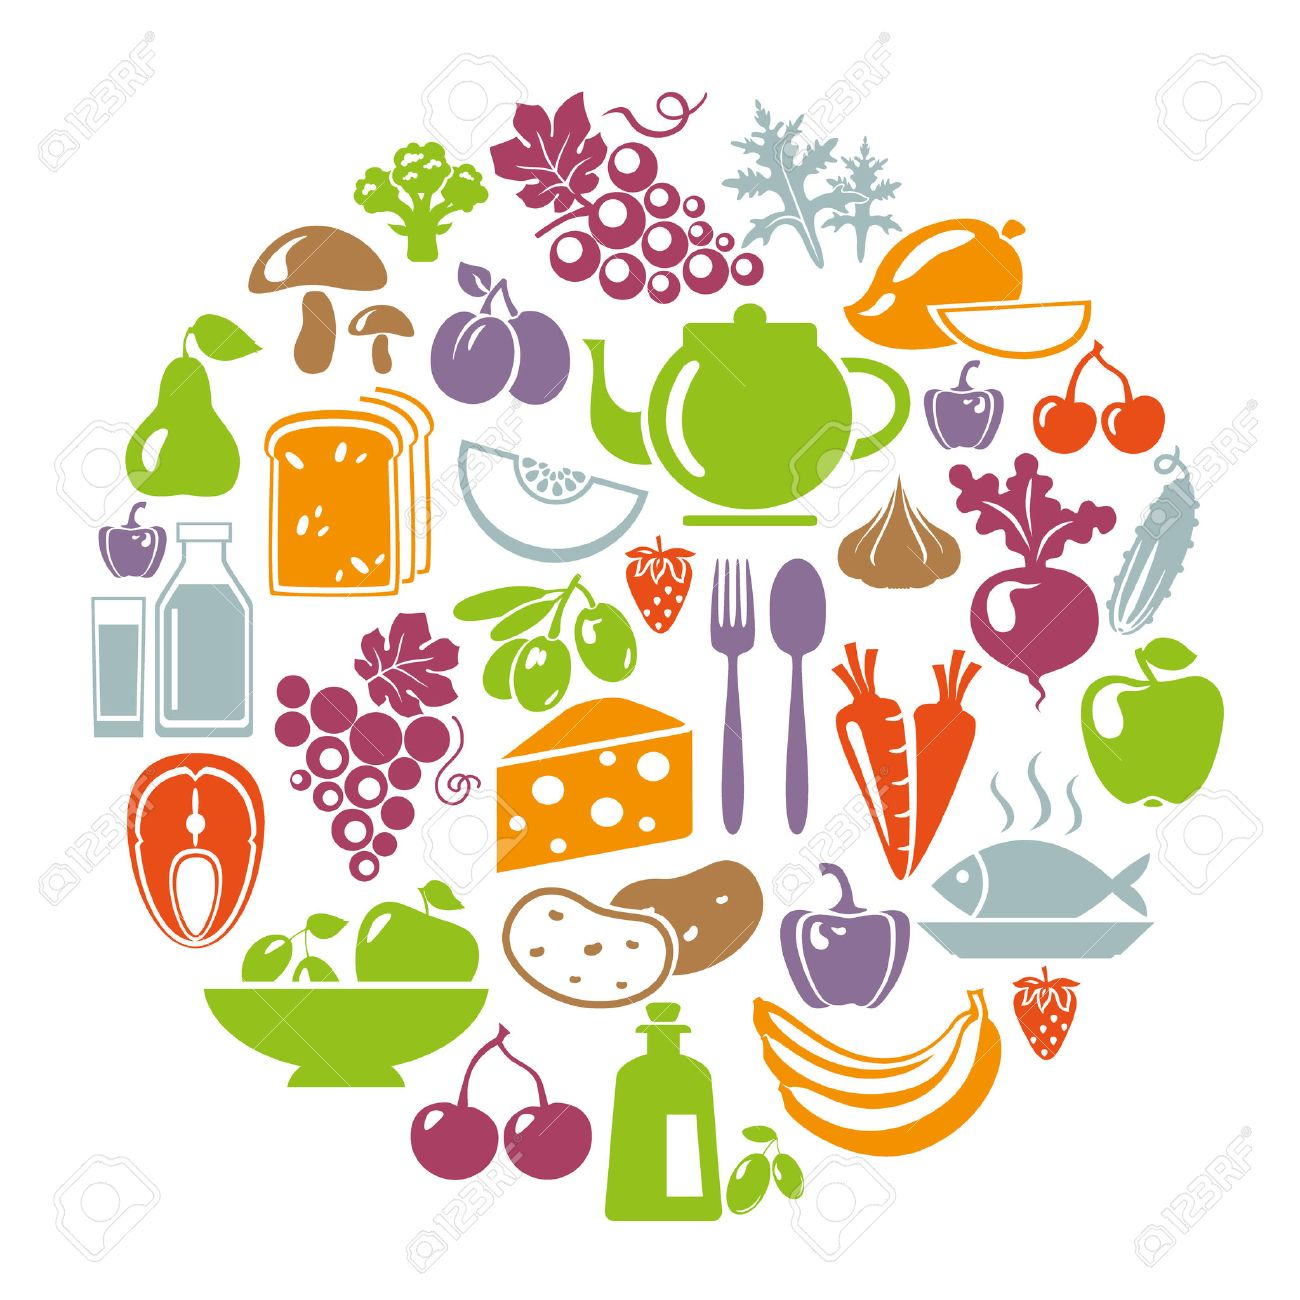 Vector illustration of healthy food concept. Circle shape with organic food icons: vegetables, fruits, fish, tea, coffee, cheese, olive oil, dairy Stock Vector - 46373369